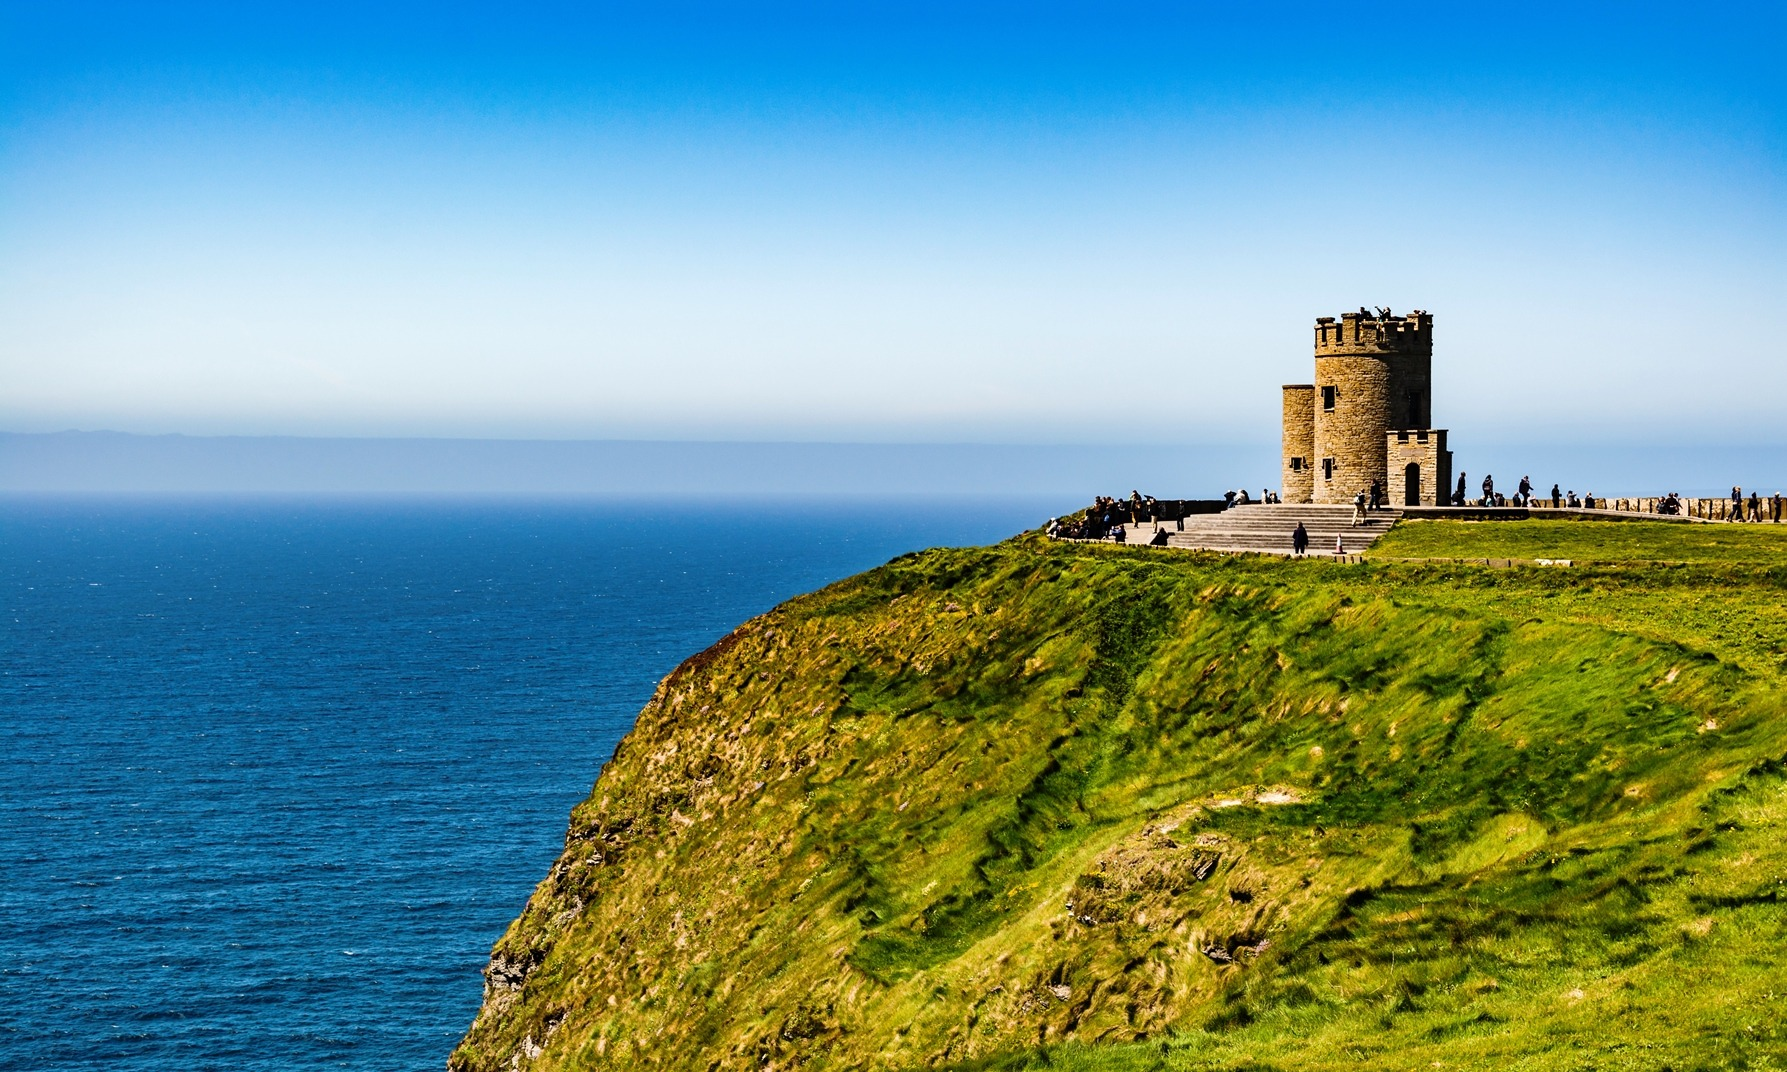 O'Brien's Tower, Cliffs of Moher, on the western coastline of Ireland